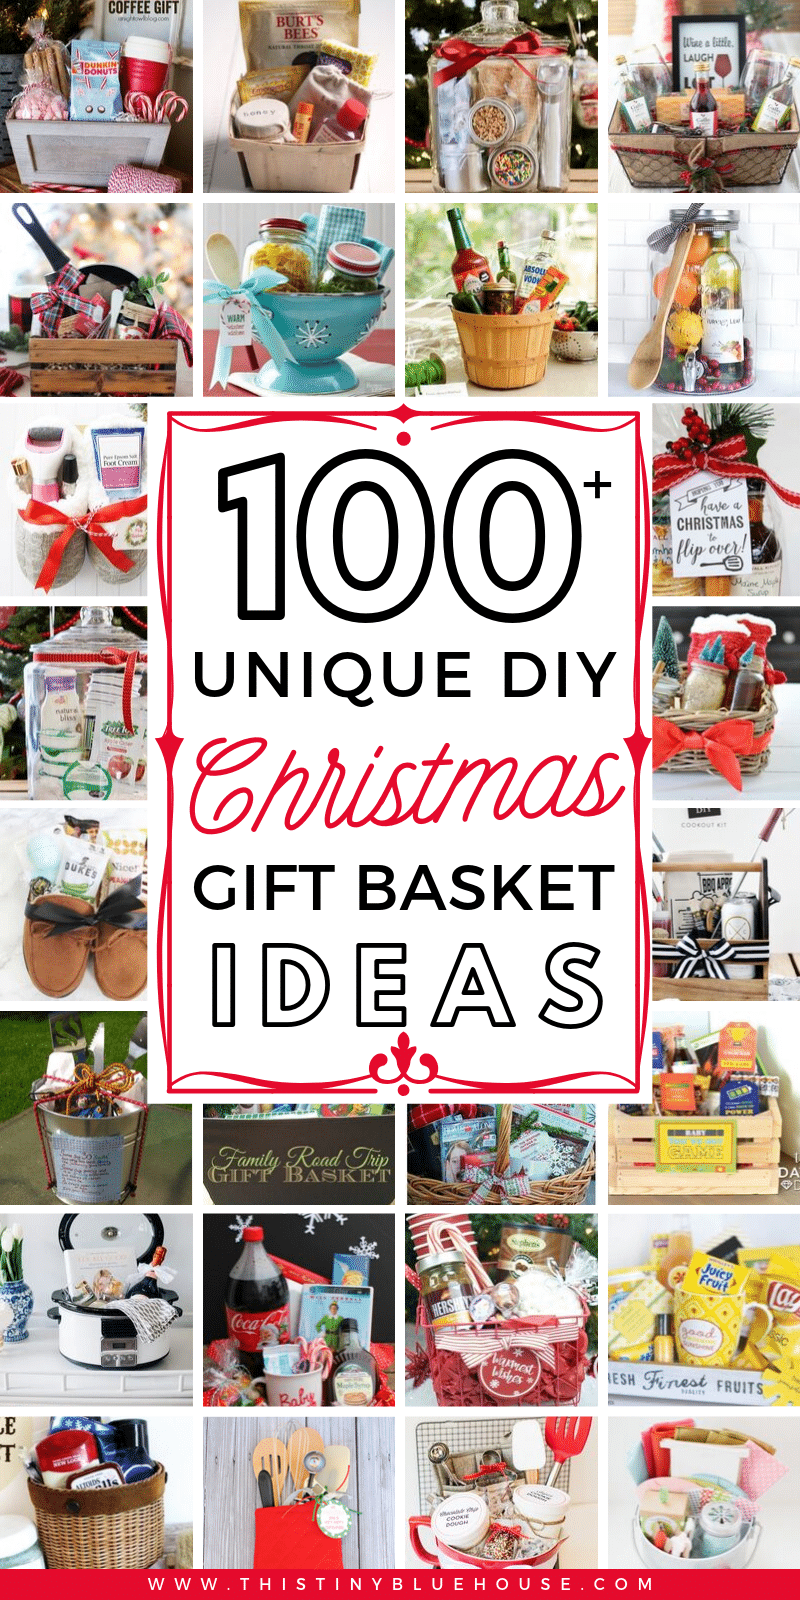 Spread some holiday cheer with these festive and unique DIY Christmas baskets. Here are over 100 fun festive DIY Christmas gift basket ideas for friends, family and even those who are the most difficult to buy for. #ChristmasGiftBaskets #ChristmasGiftBasketsForFamily #ChristmasGiftBasketsDIY #ChristmasGiftBasketsIdeas #DIYChristmasGiftBaskets #DIYChristmasBasketsGifts #Christmas #ChristmasGiftIdeas #DIYChristmasGifts